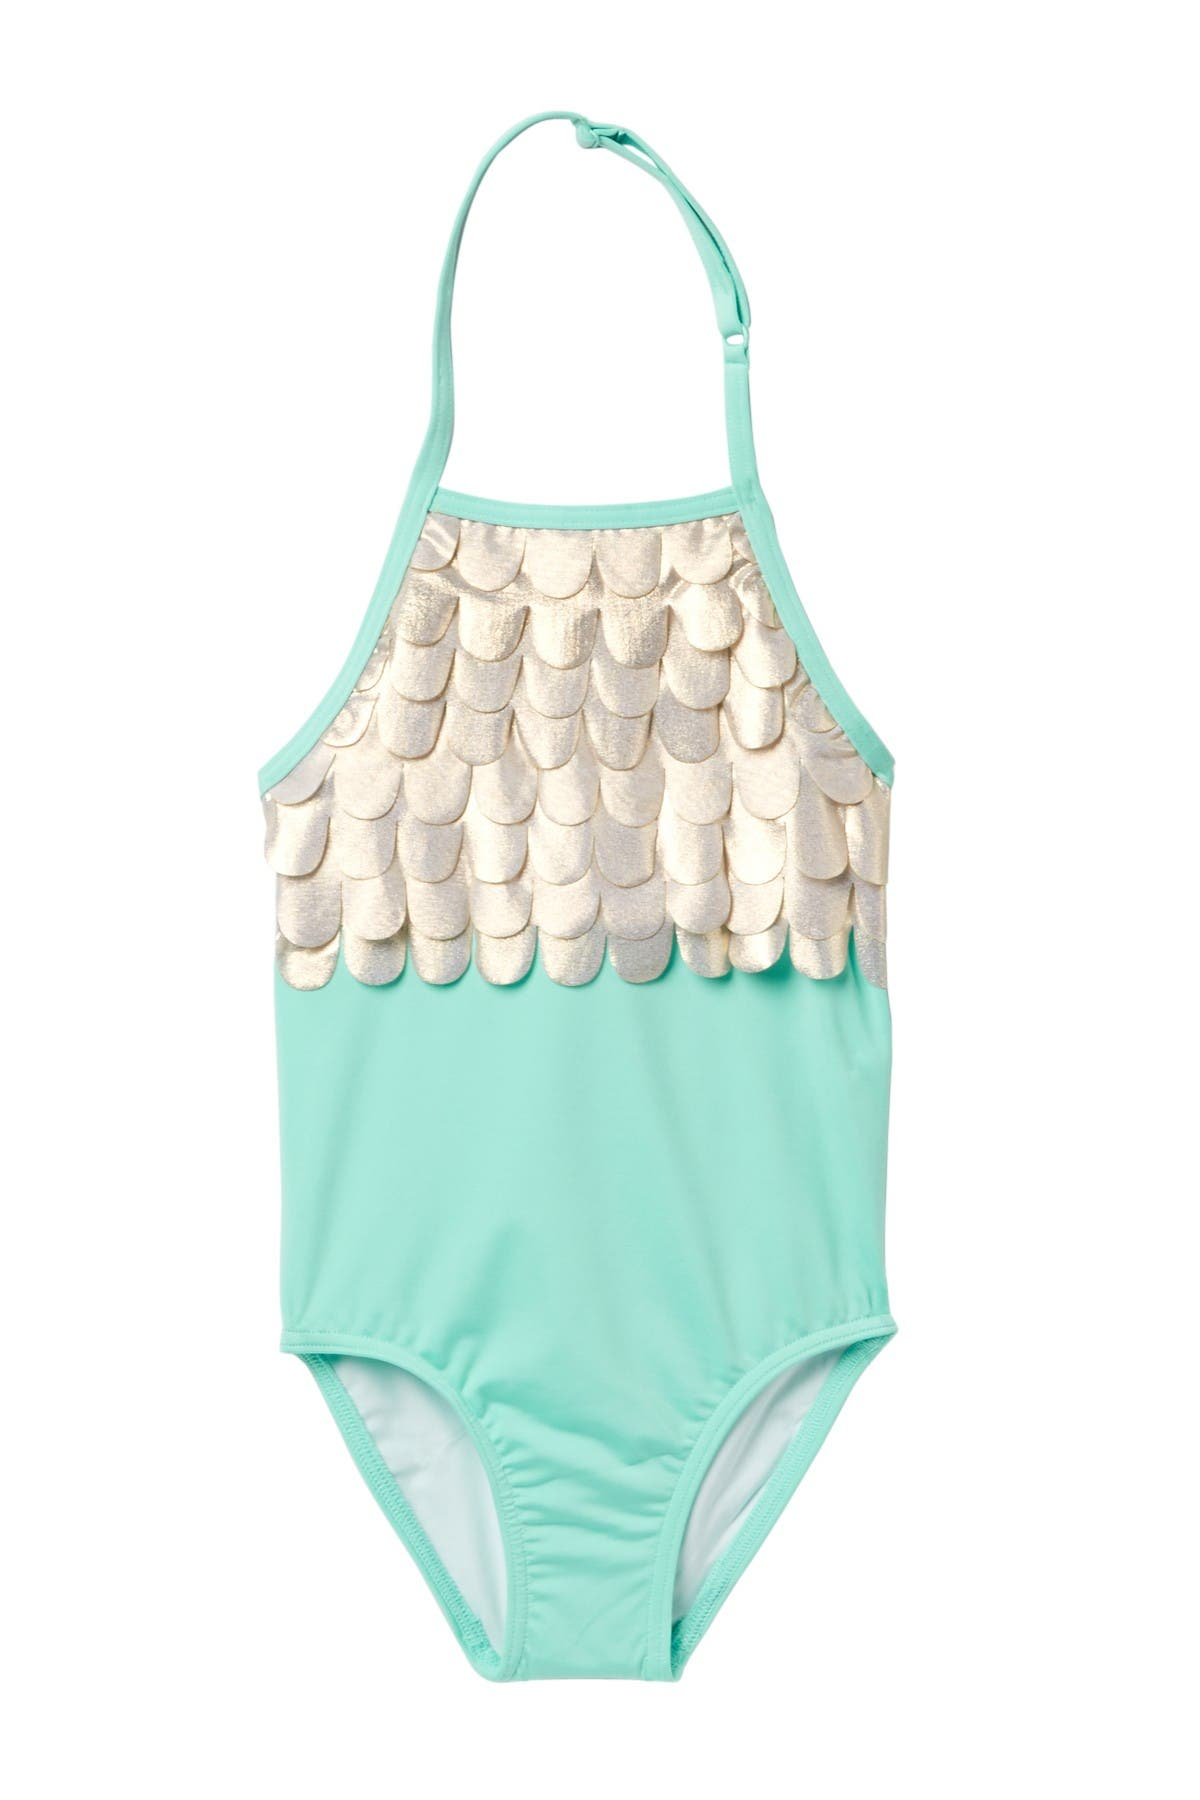 Image of Harper Canyon Scalloped One-Piece Swimsuit